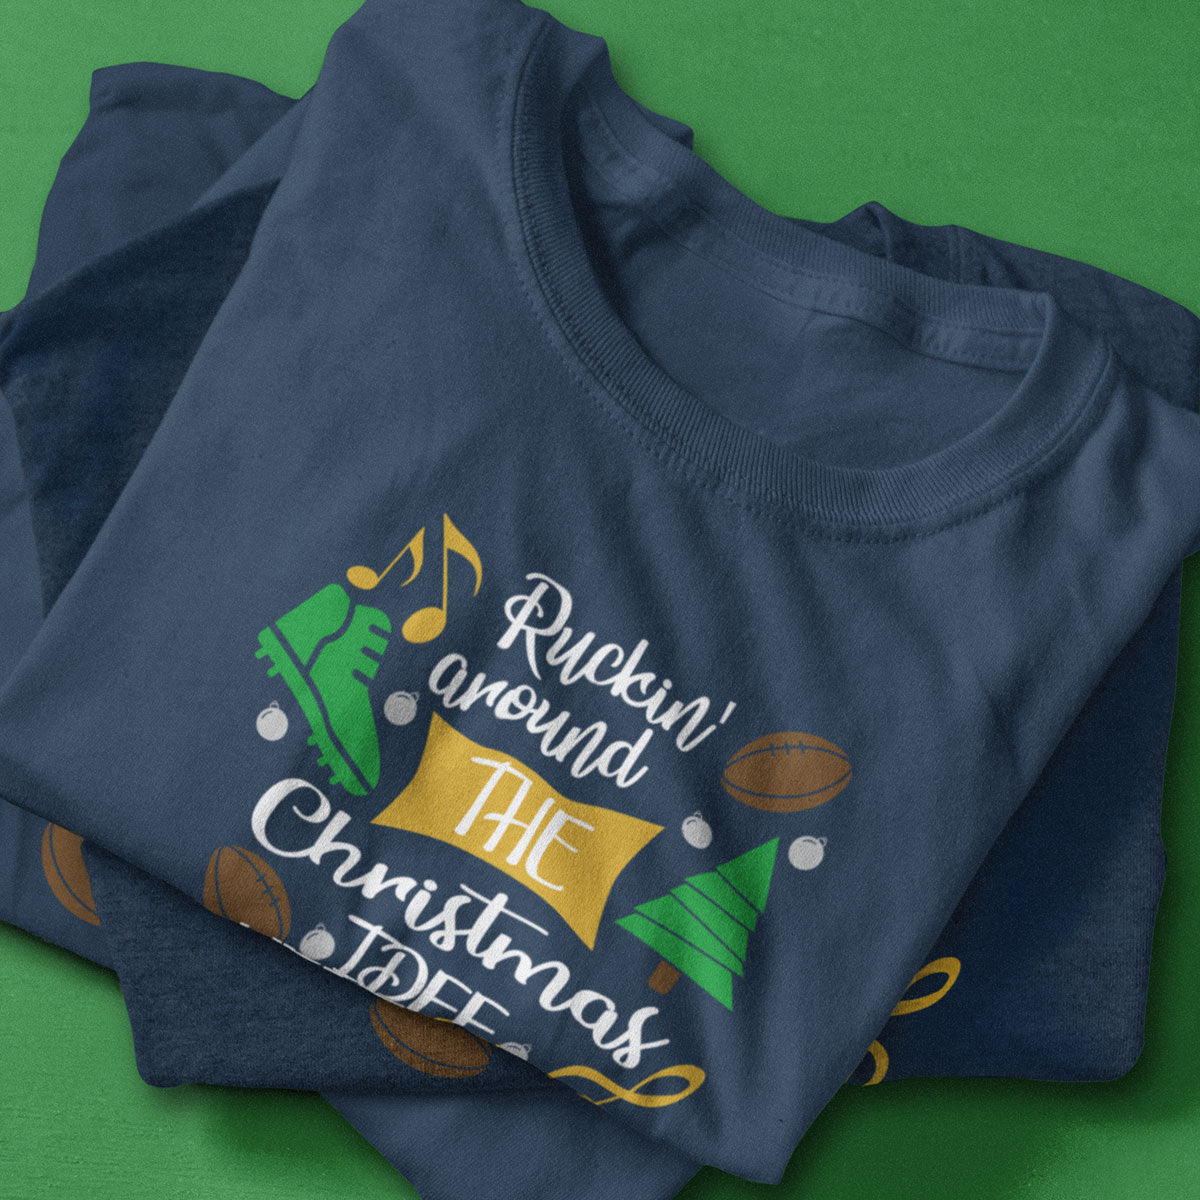 Kid's Ruckin' Around The Christmas Tree Rugby Tee - First XV rugbystuff.com